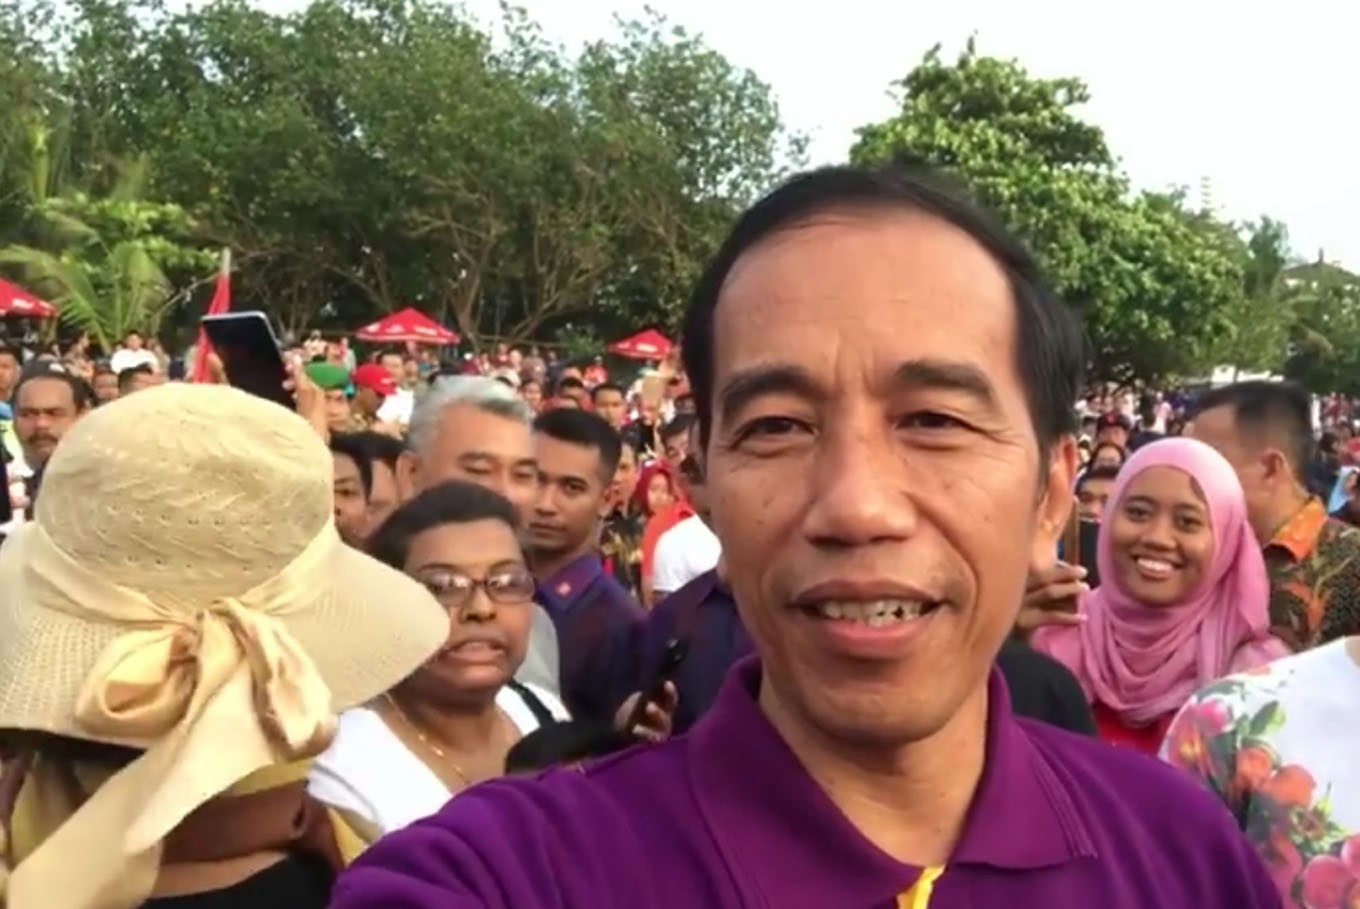 Jokowi declines to comment on his minister's leaked conversation